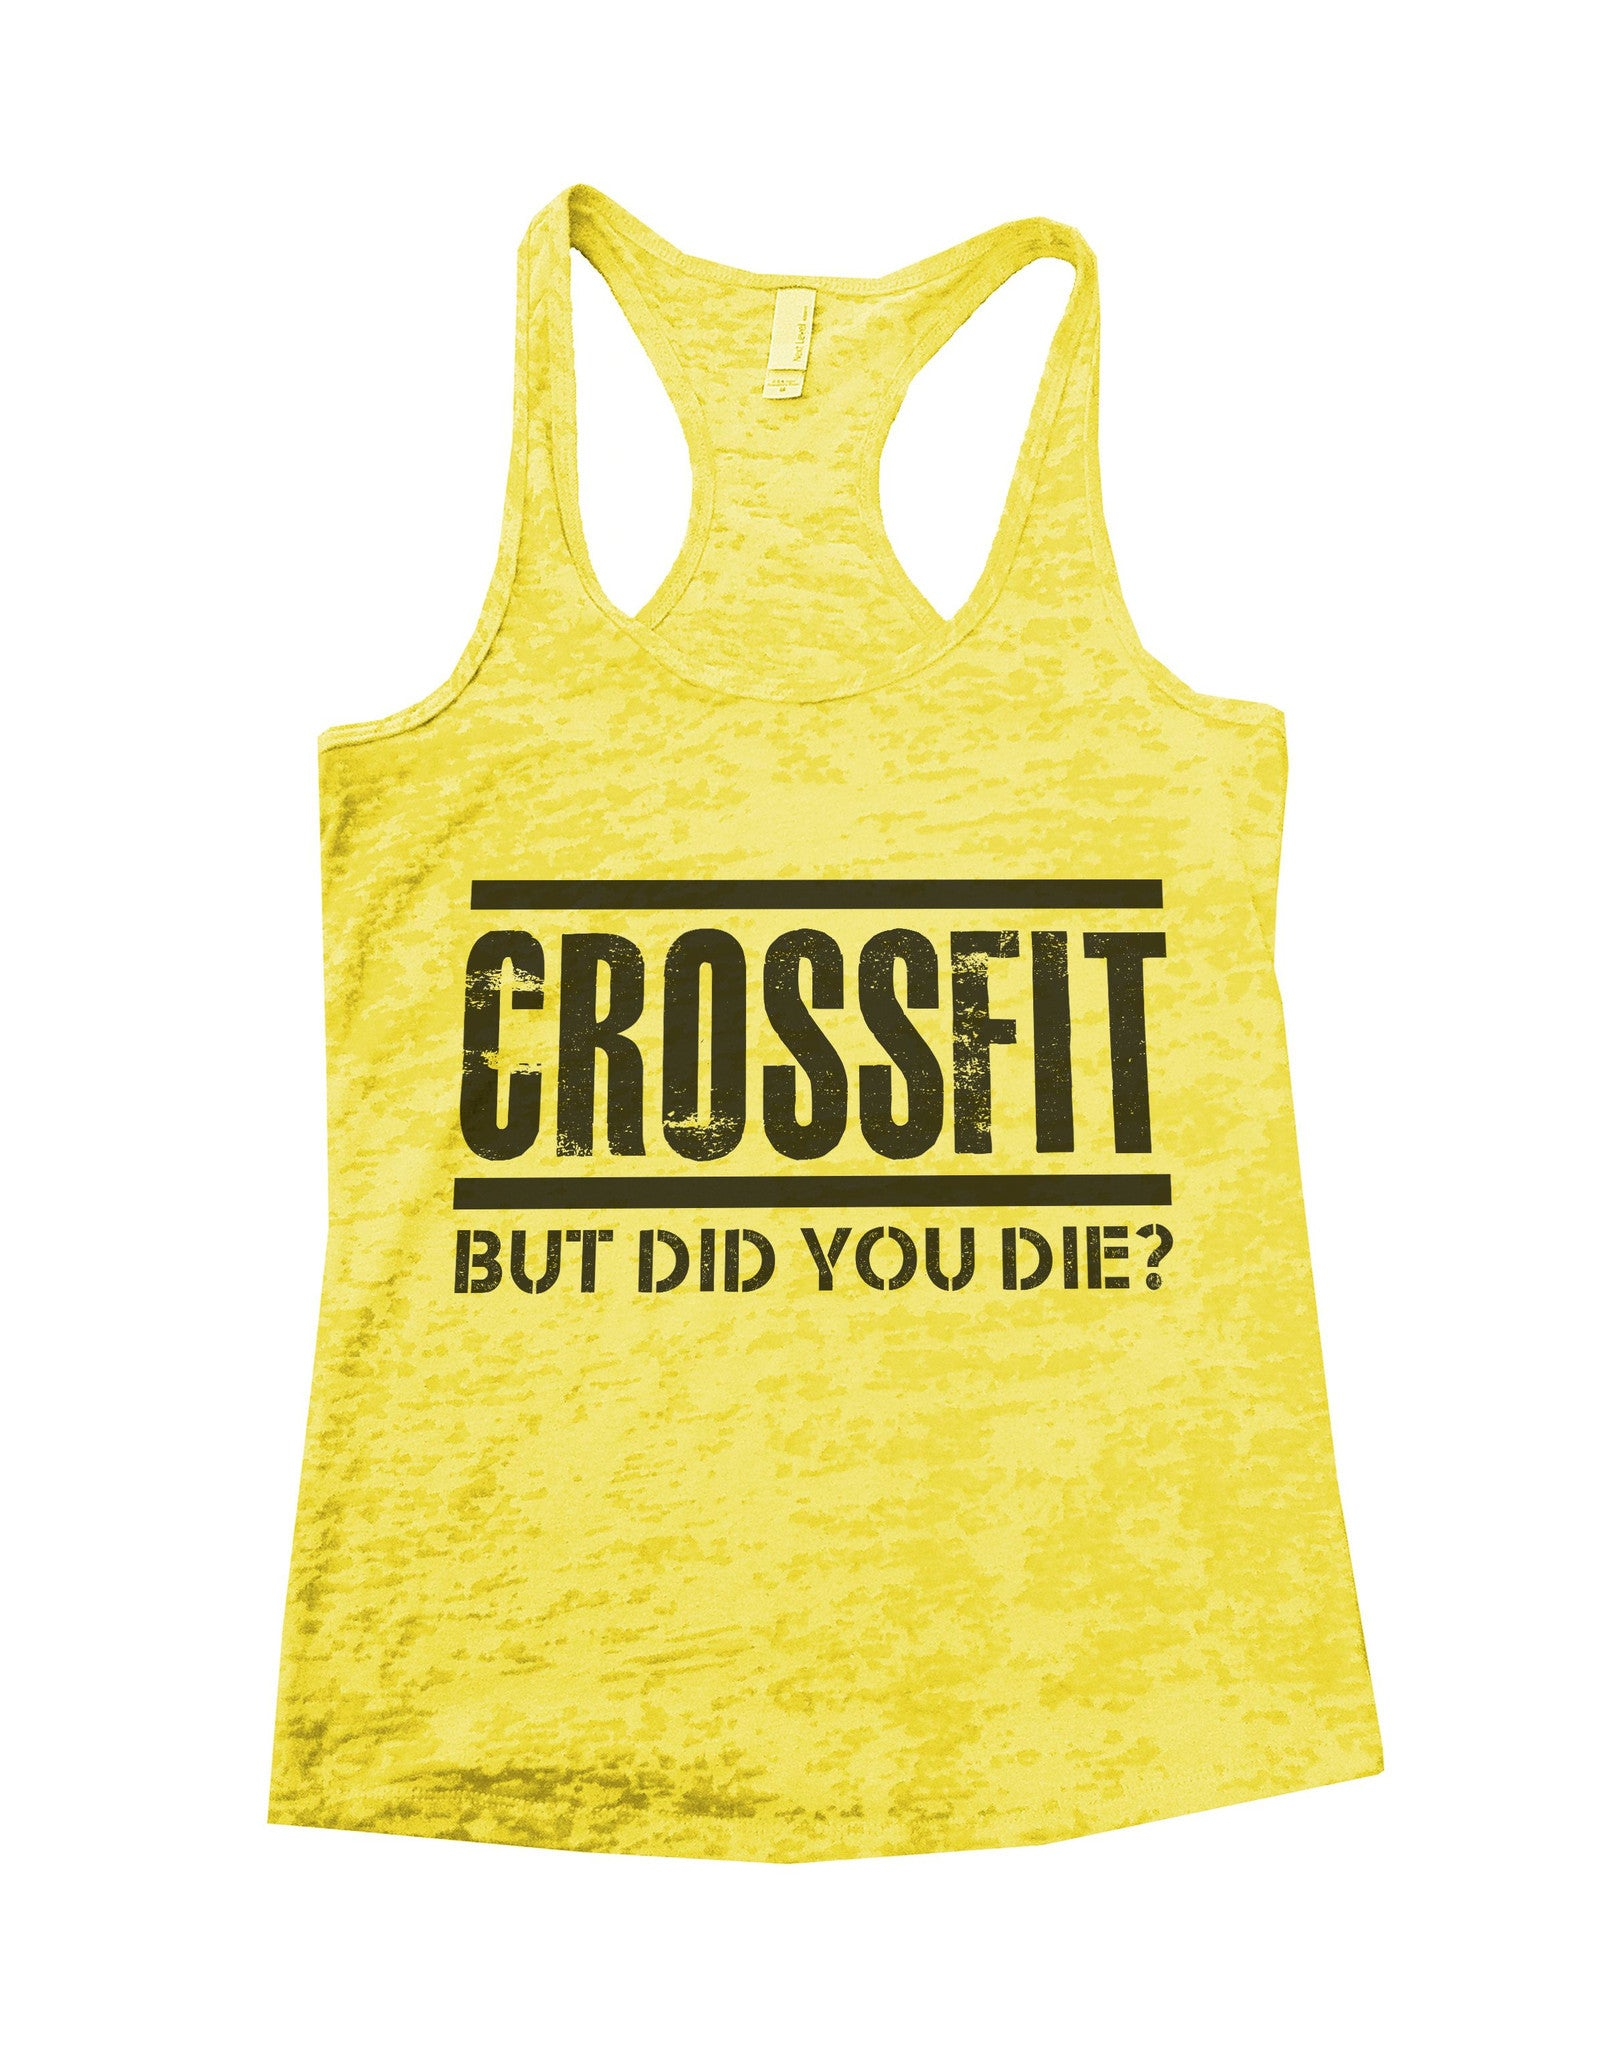 Crossfit But Did You Die Burnout Tank Top By BurnoutTankTops.com - 648 - Funny Shirts Tank Tops Burnouts and Triblends  - 5